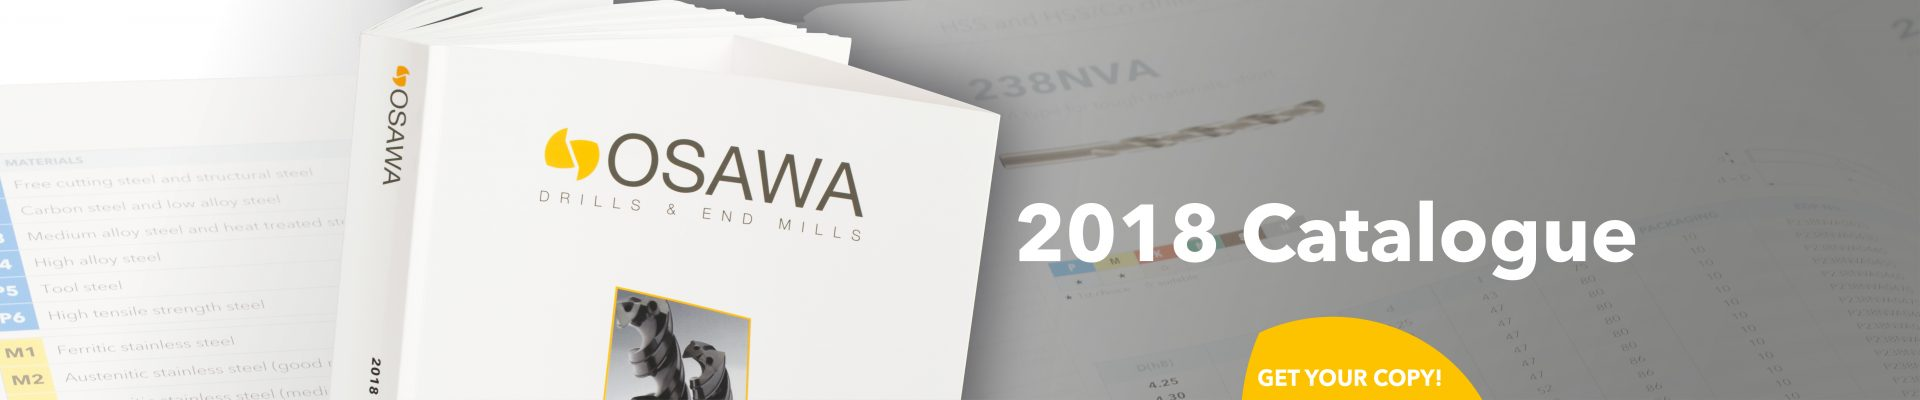 Get the Osawa 2018 Catalogue